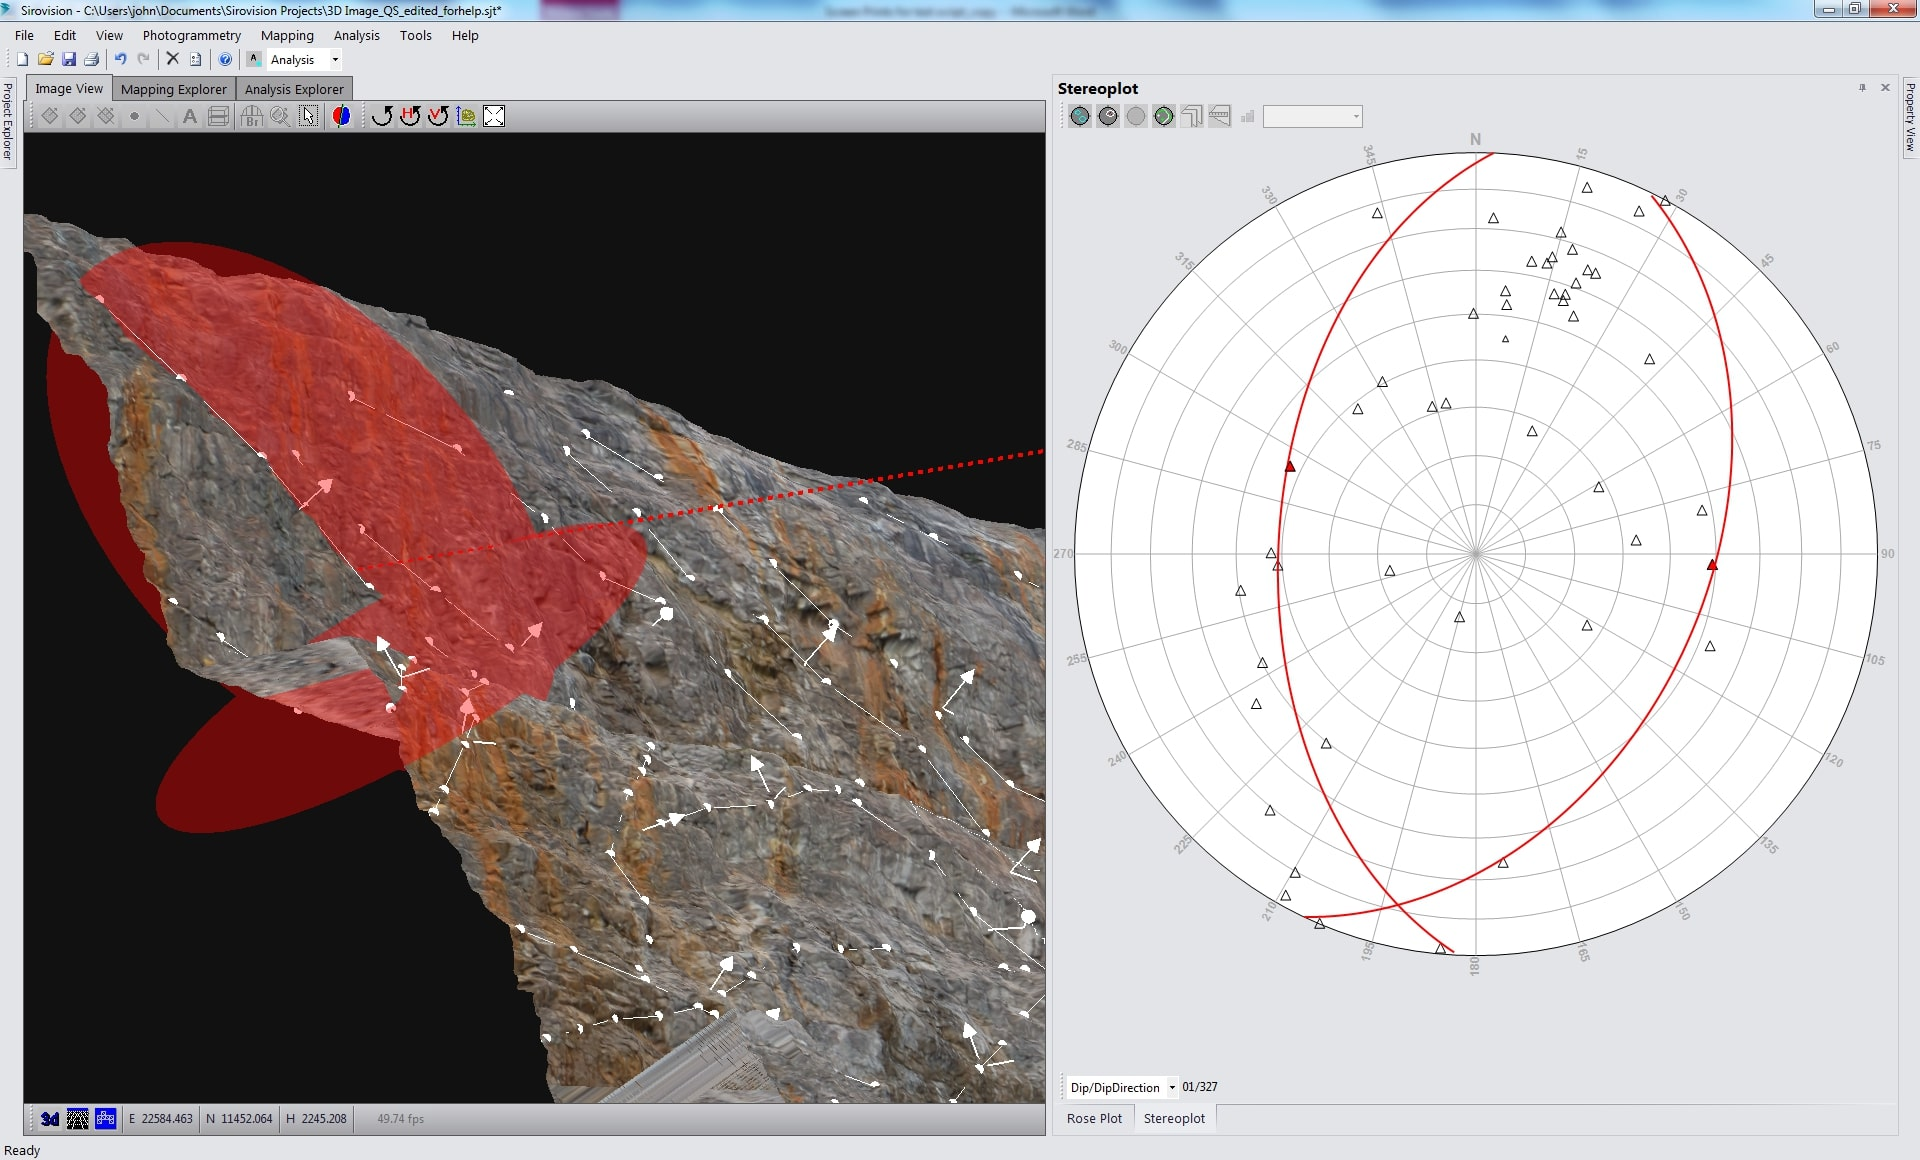 Sirovision - geotechnical analysis - dynamic structural selection/visualization - 3D geological mapping